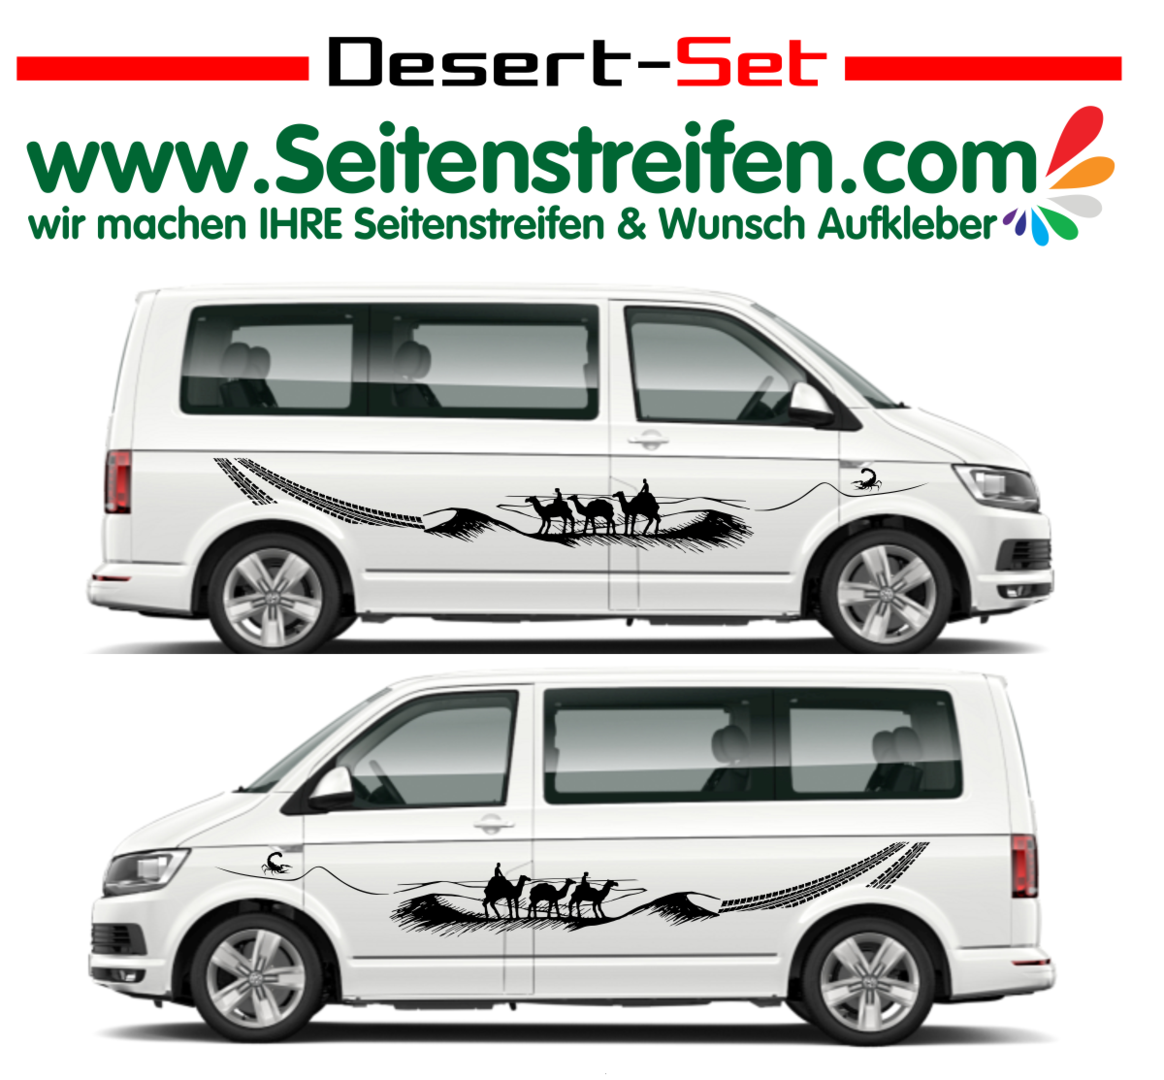 VW Bus T4 T5 T6 Wüste Kamele Desert Wheels Panorama Outdoor Aufkleber Dekor Set Nº.: U1906